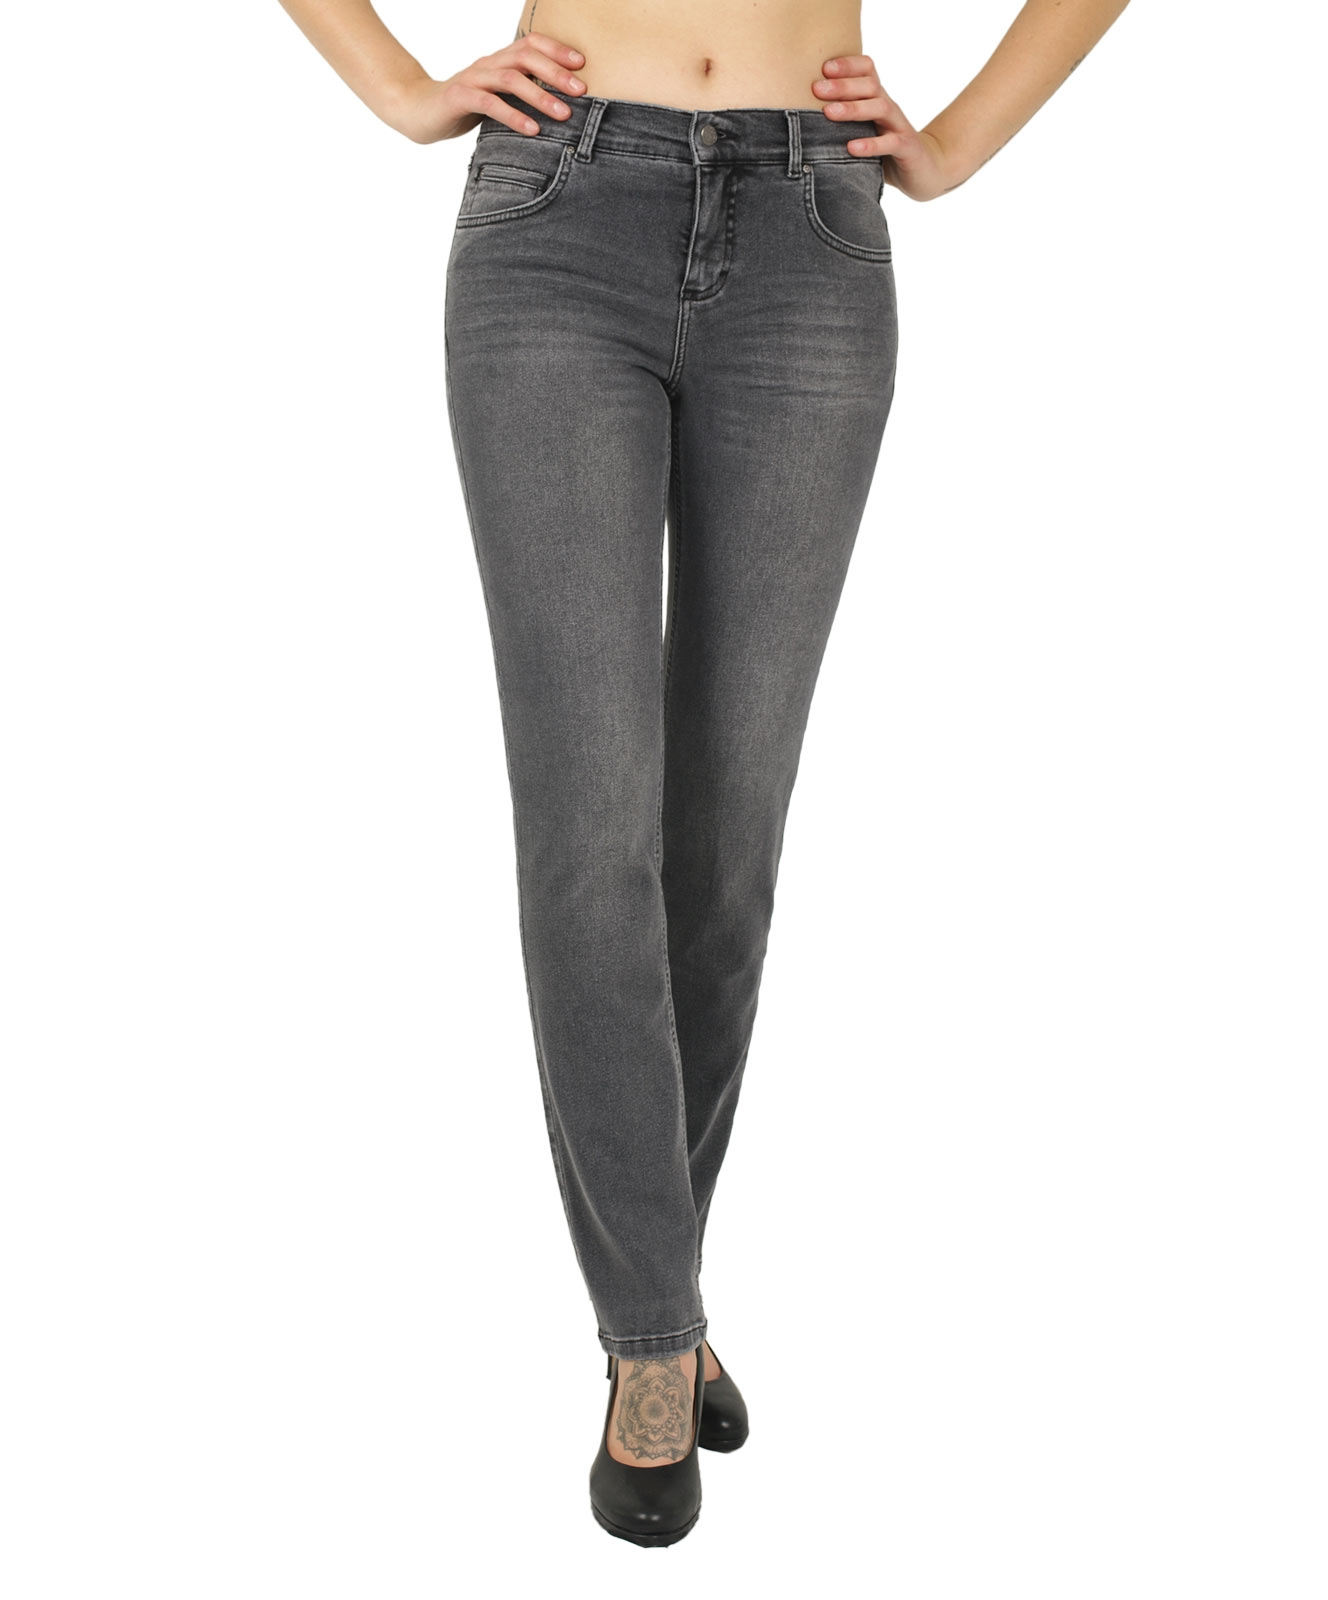 Hosen - Angels Straight Leg Jeans Cici in Grey Used Buffi Crinkle  - Onlineshop Jeans Meile